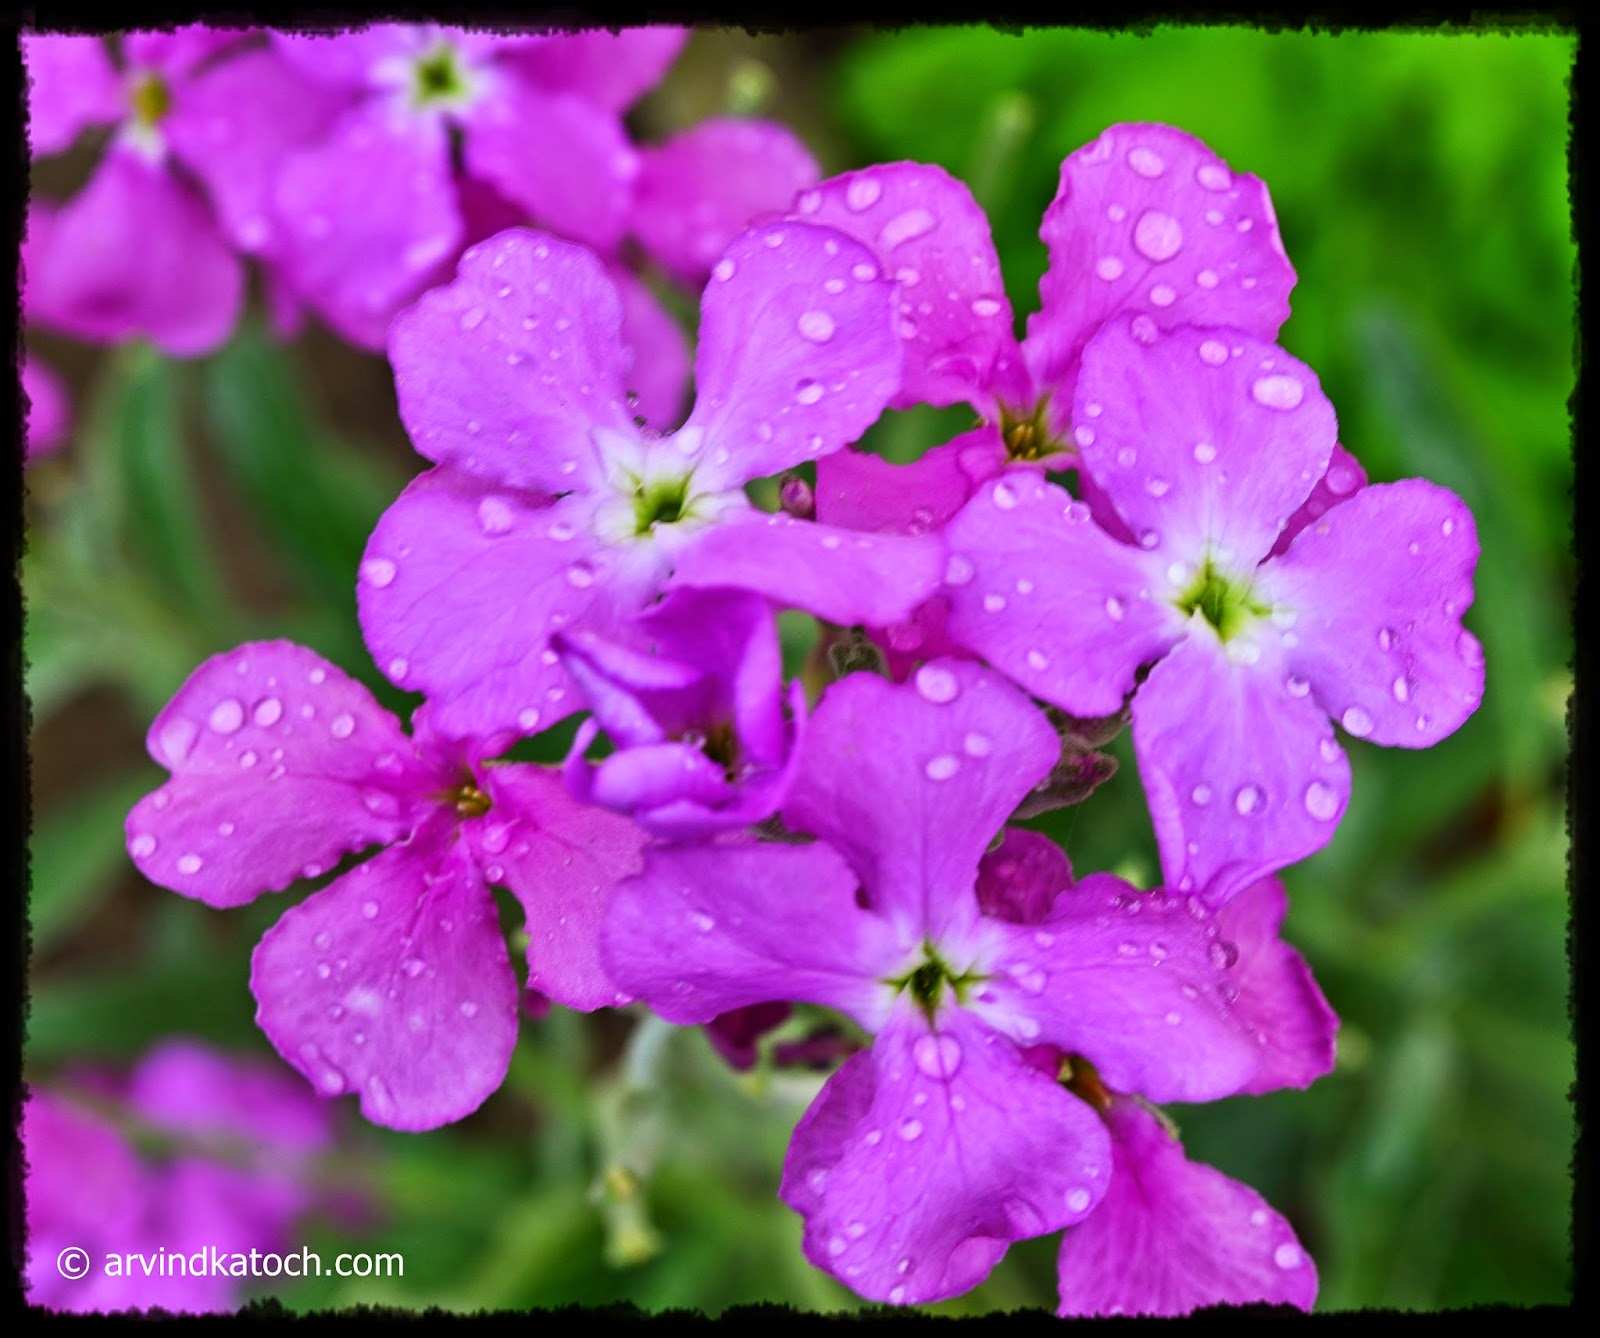 Water Droplets, Flowers, Garden flowers